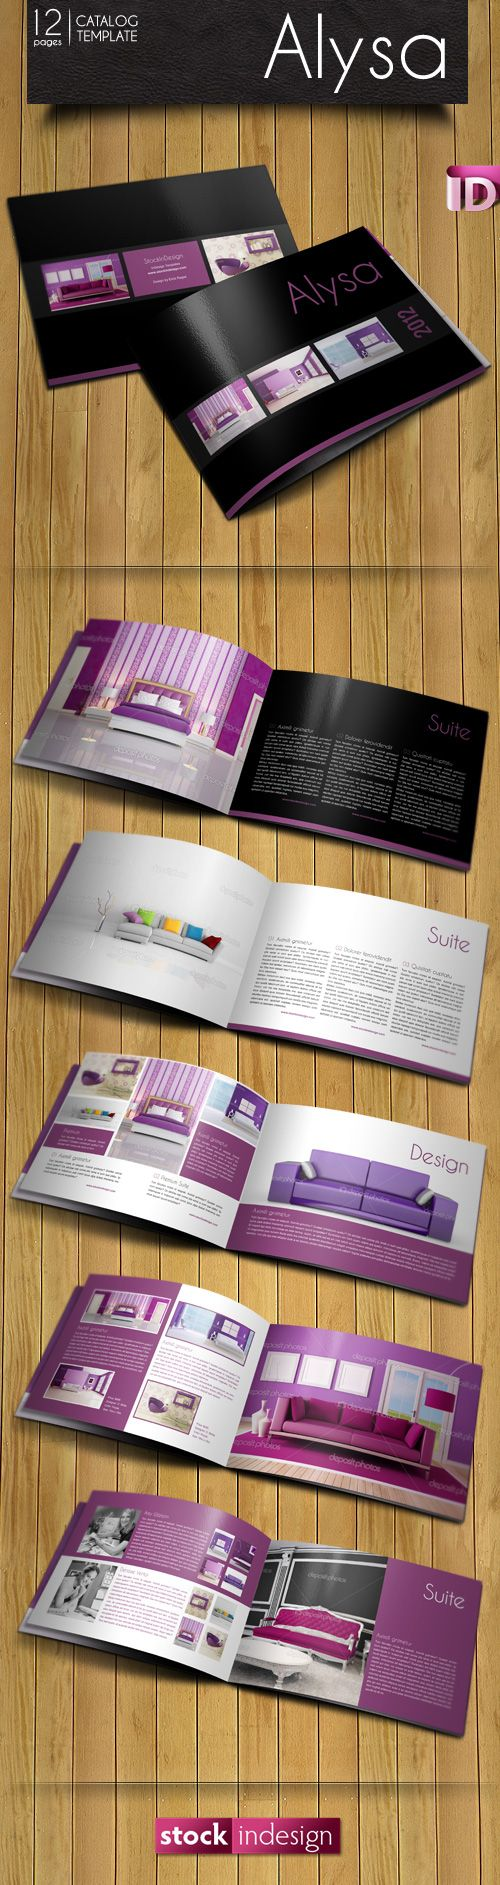 FREE InDesign Catalog Template: Alysa | Design Tips & Tools ...